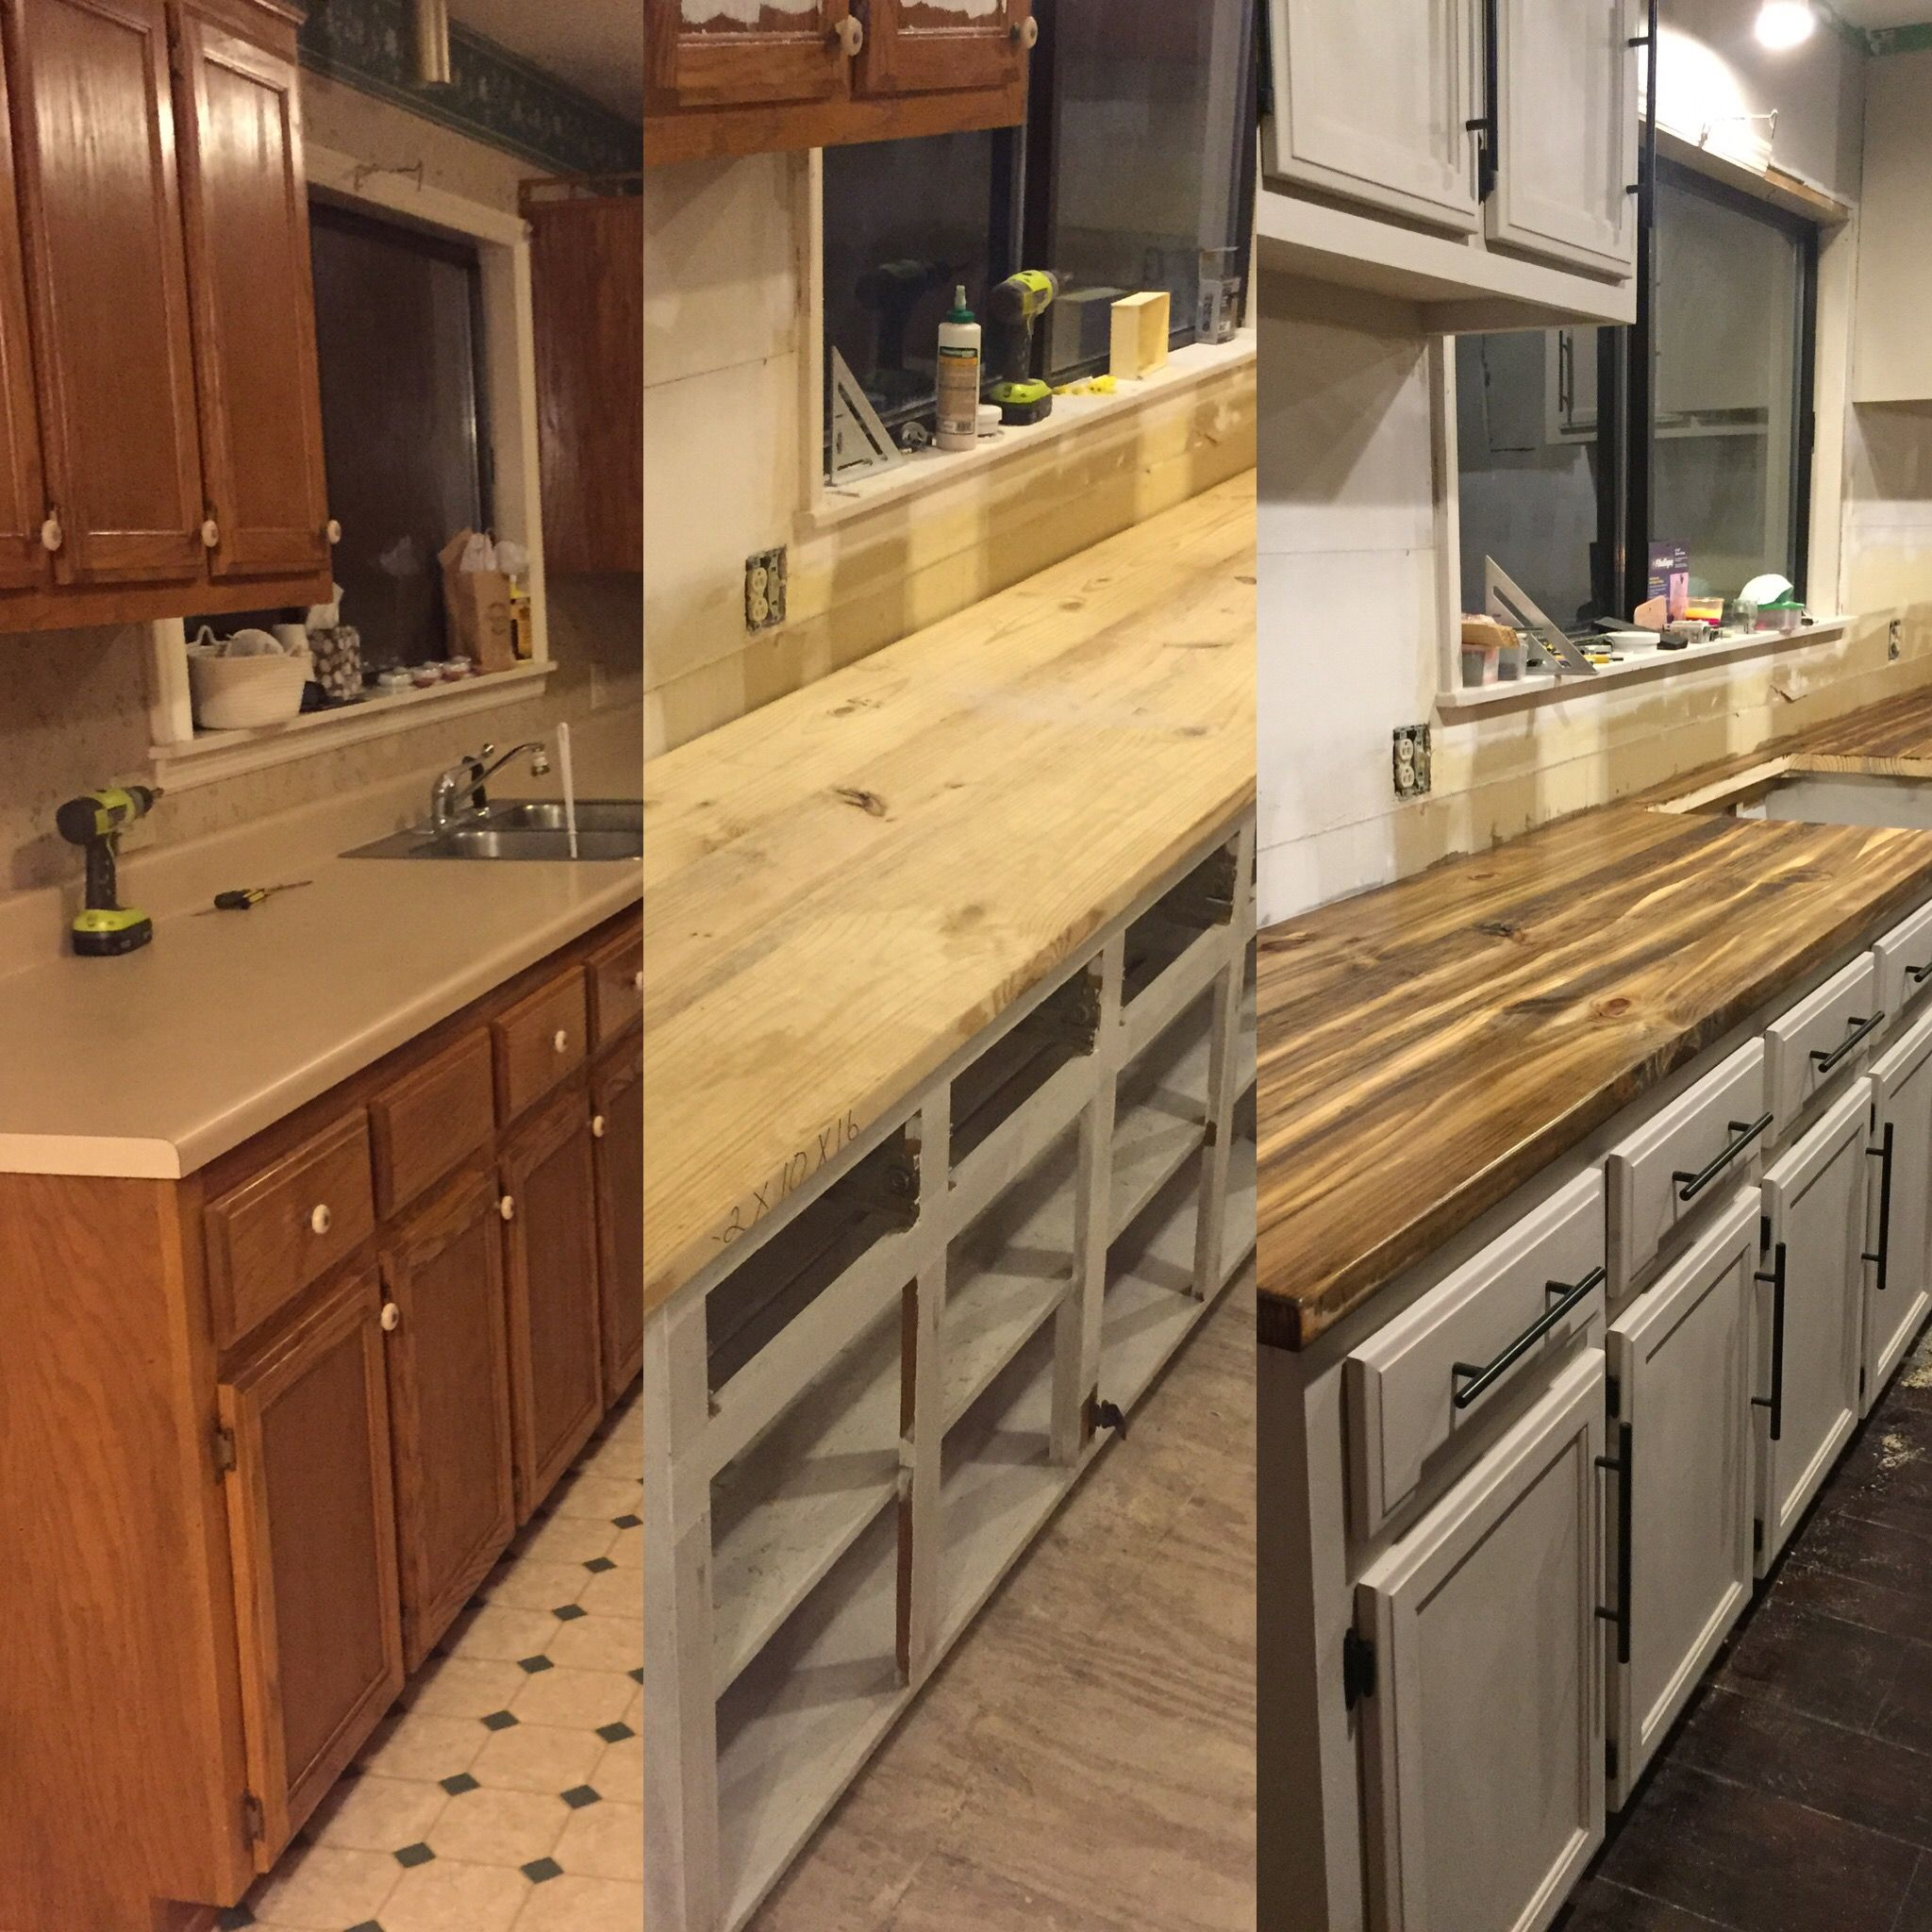 Diy Wood Kitchen Countertops: DIY $150 Countertops! FOLLOW ME ON INSTAGRAM